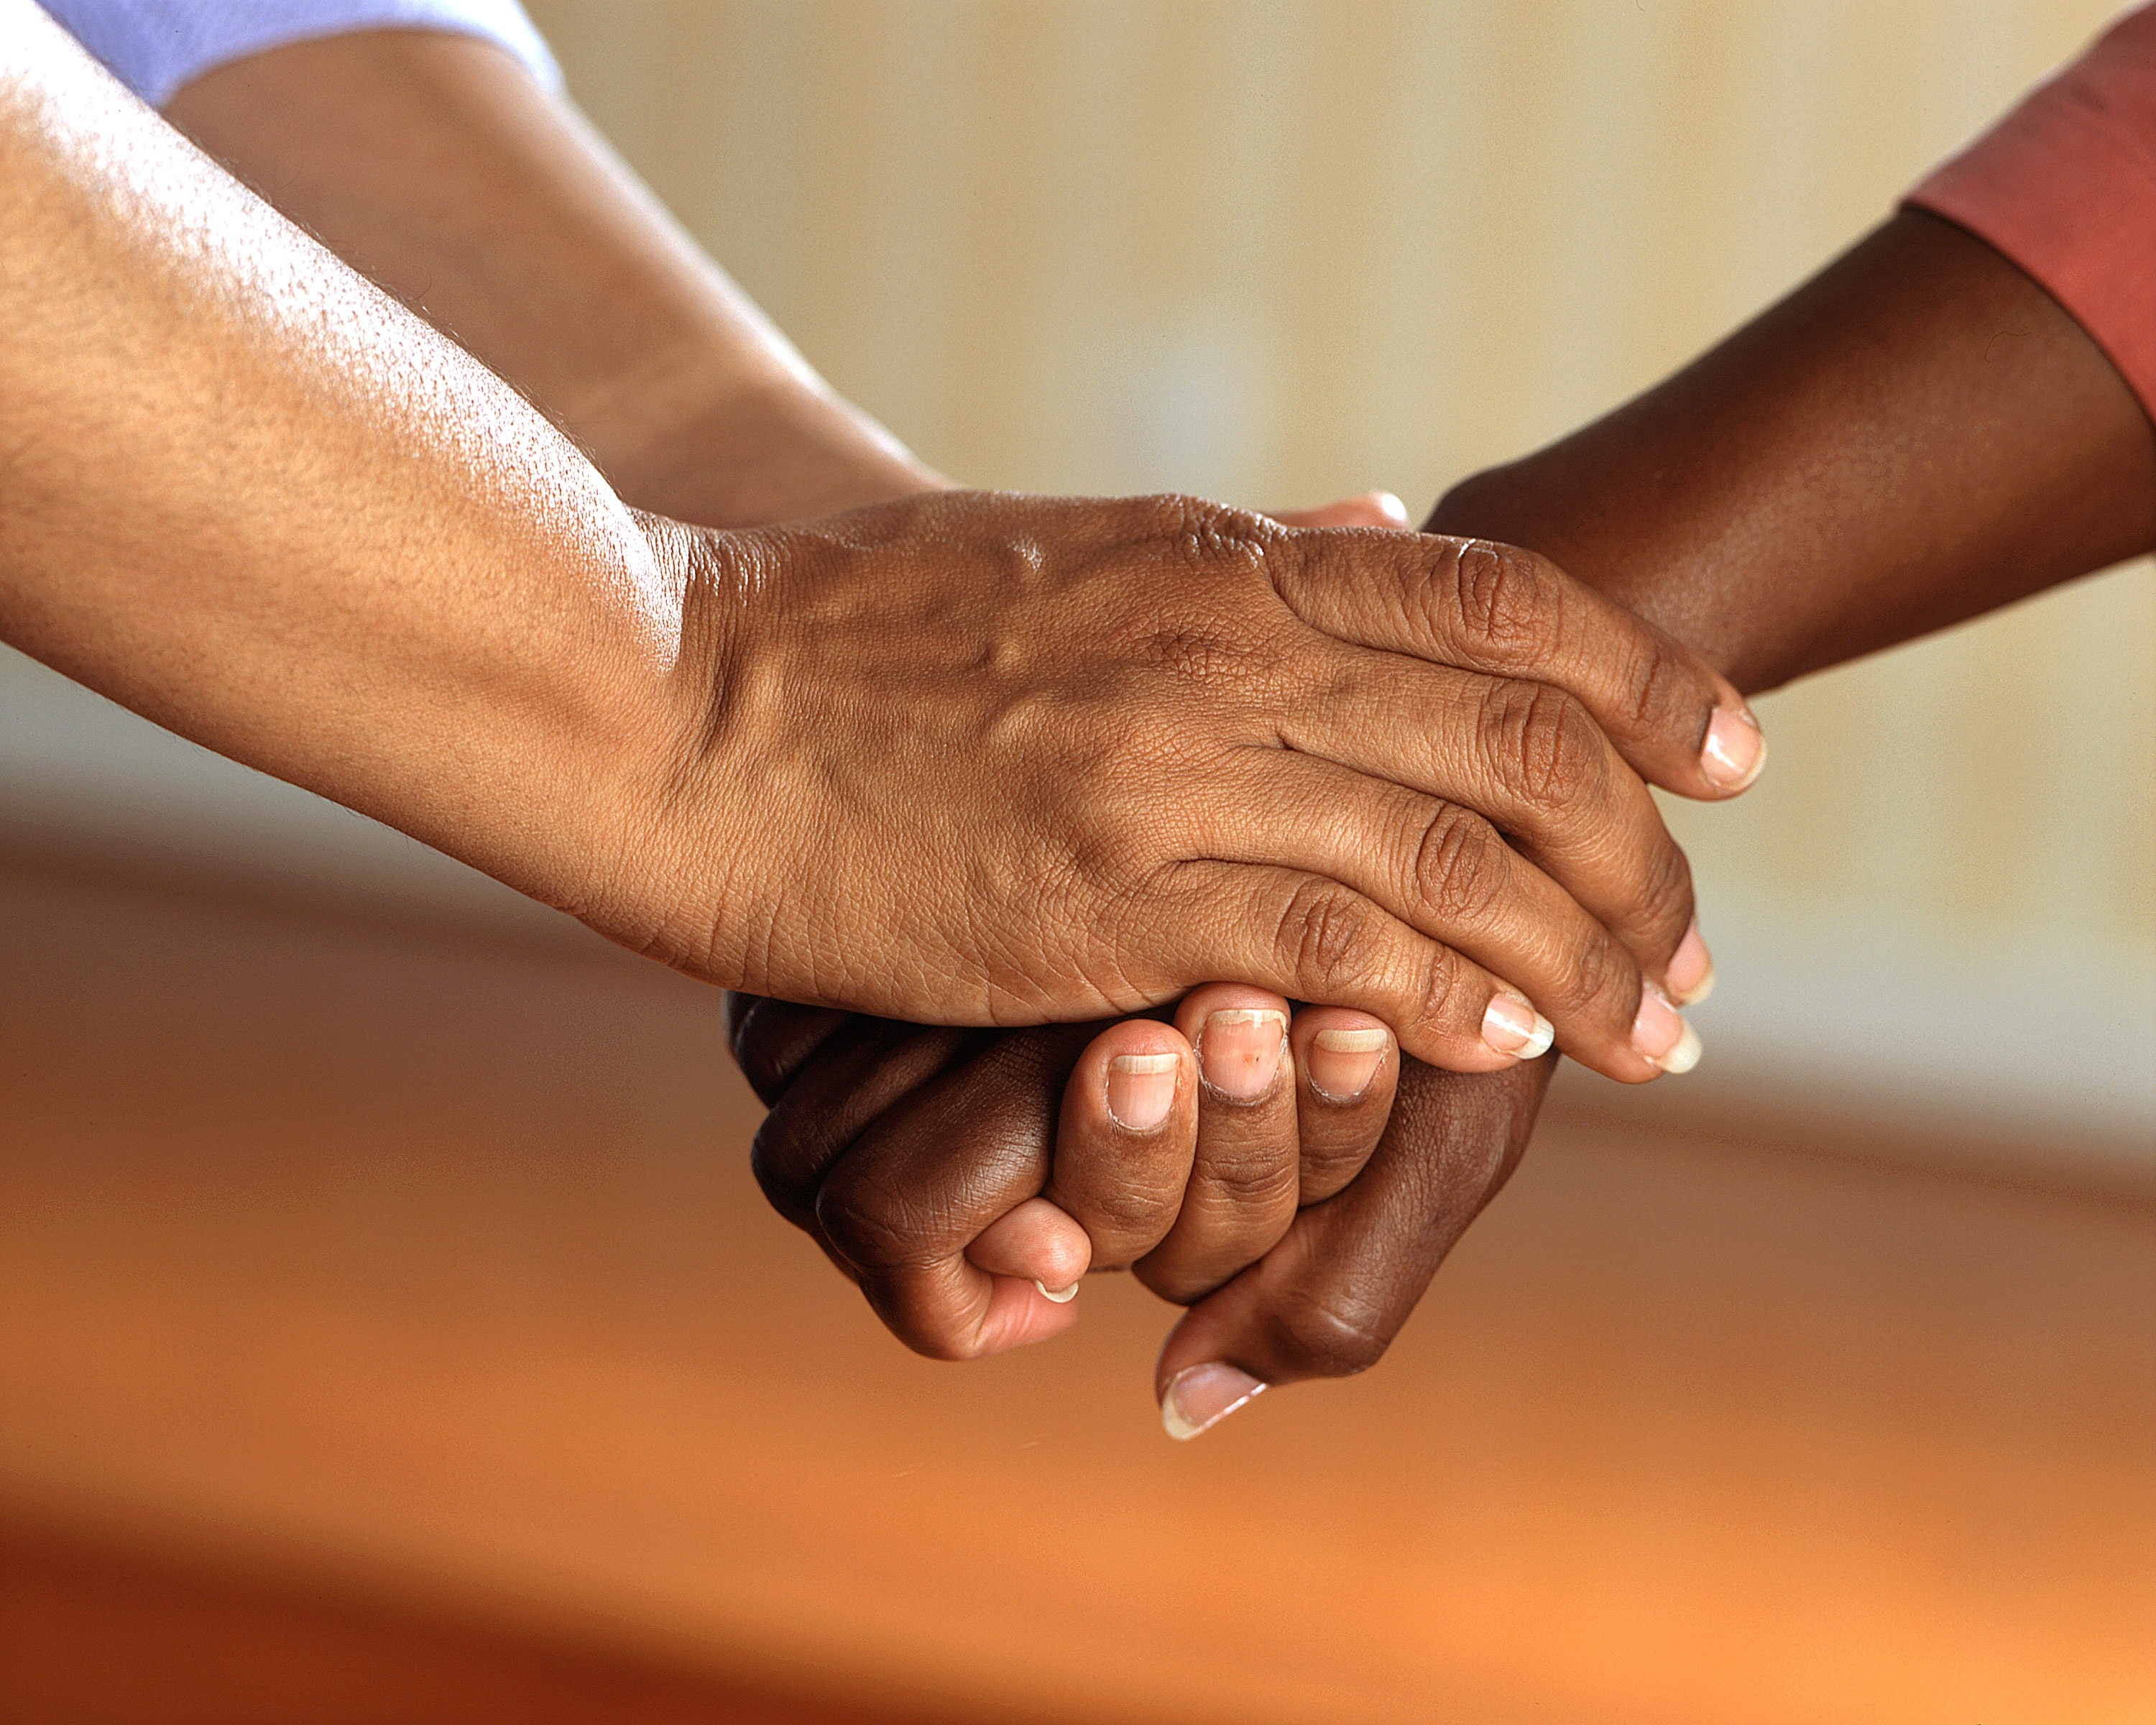 Social support can affect how people with diabetes think, feel and act